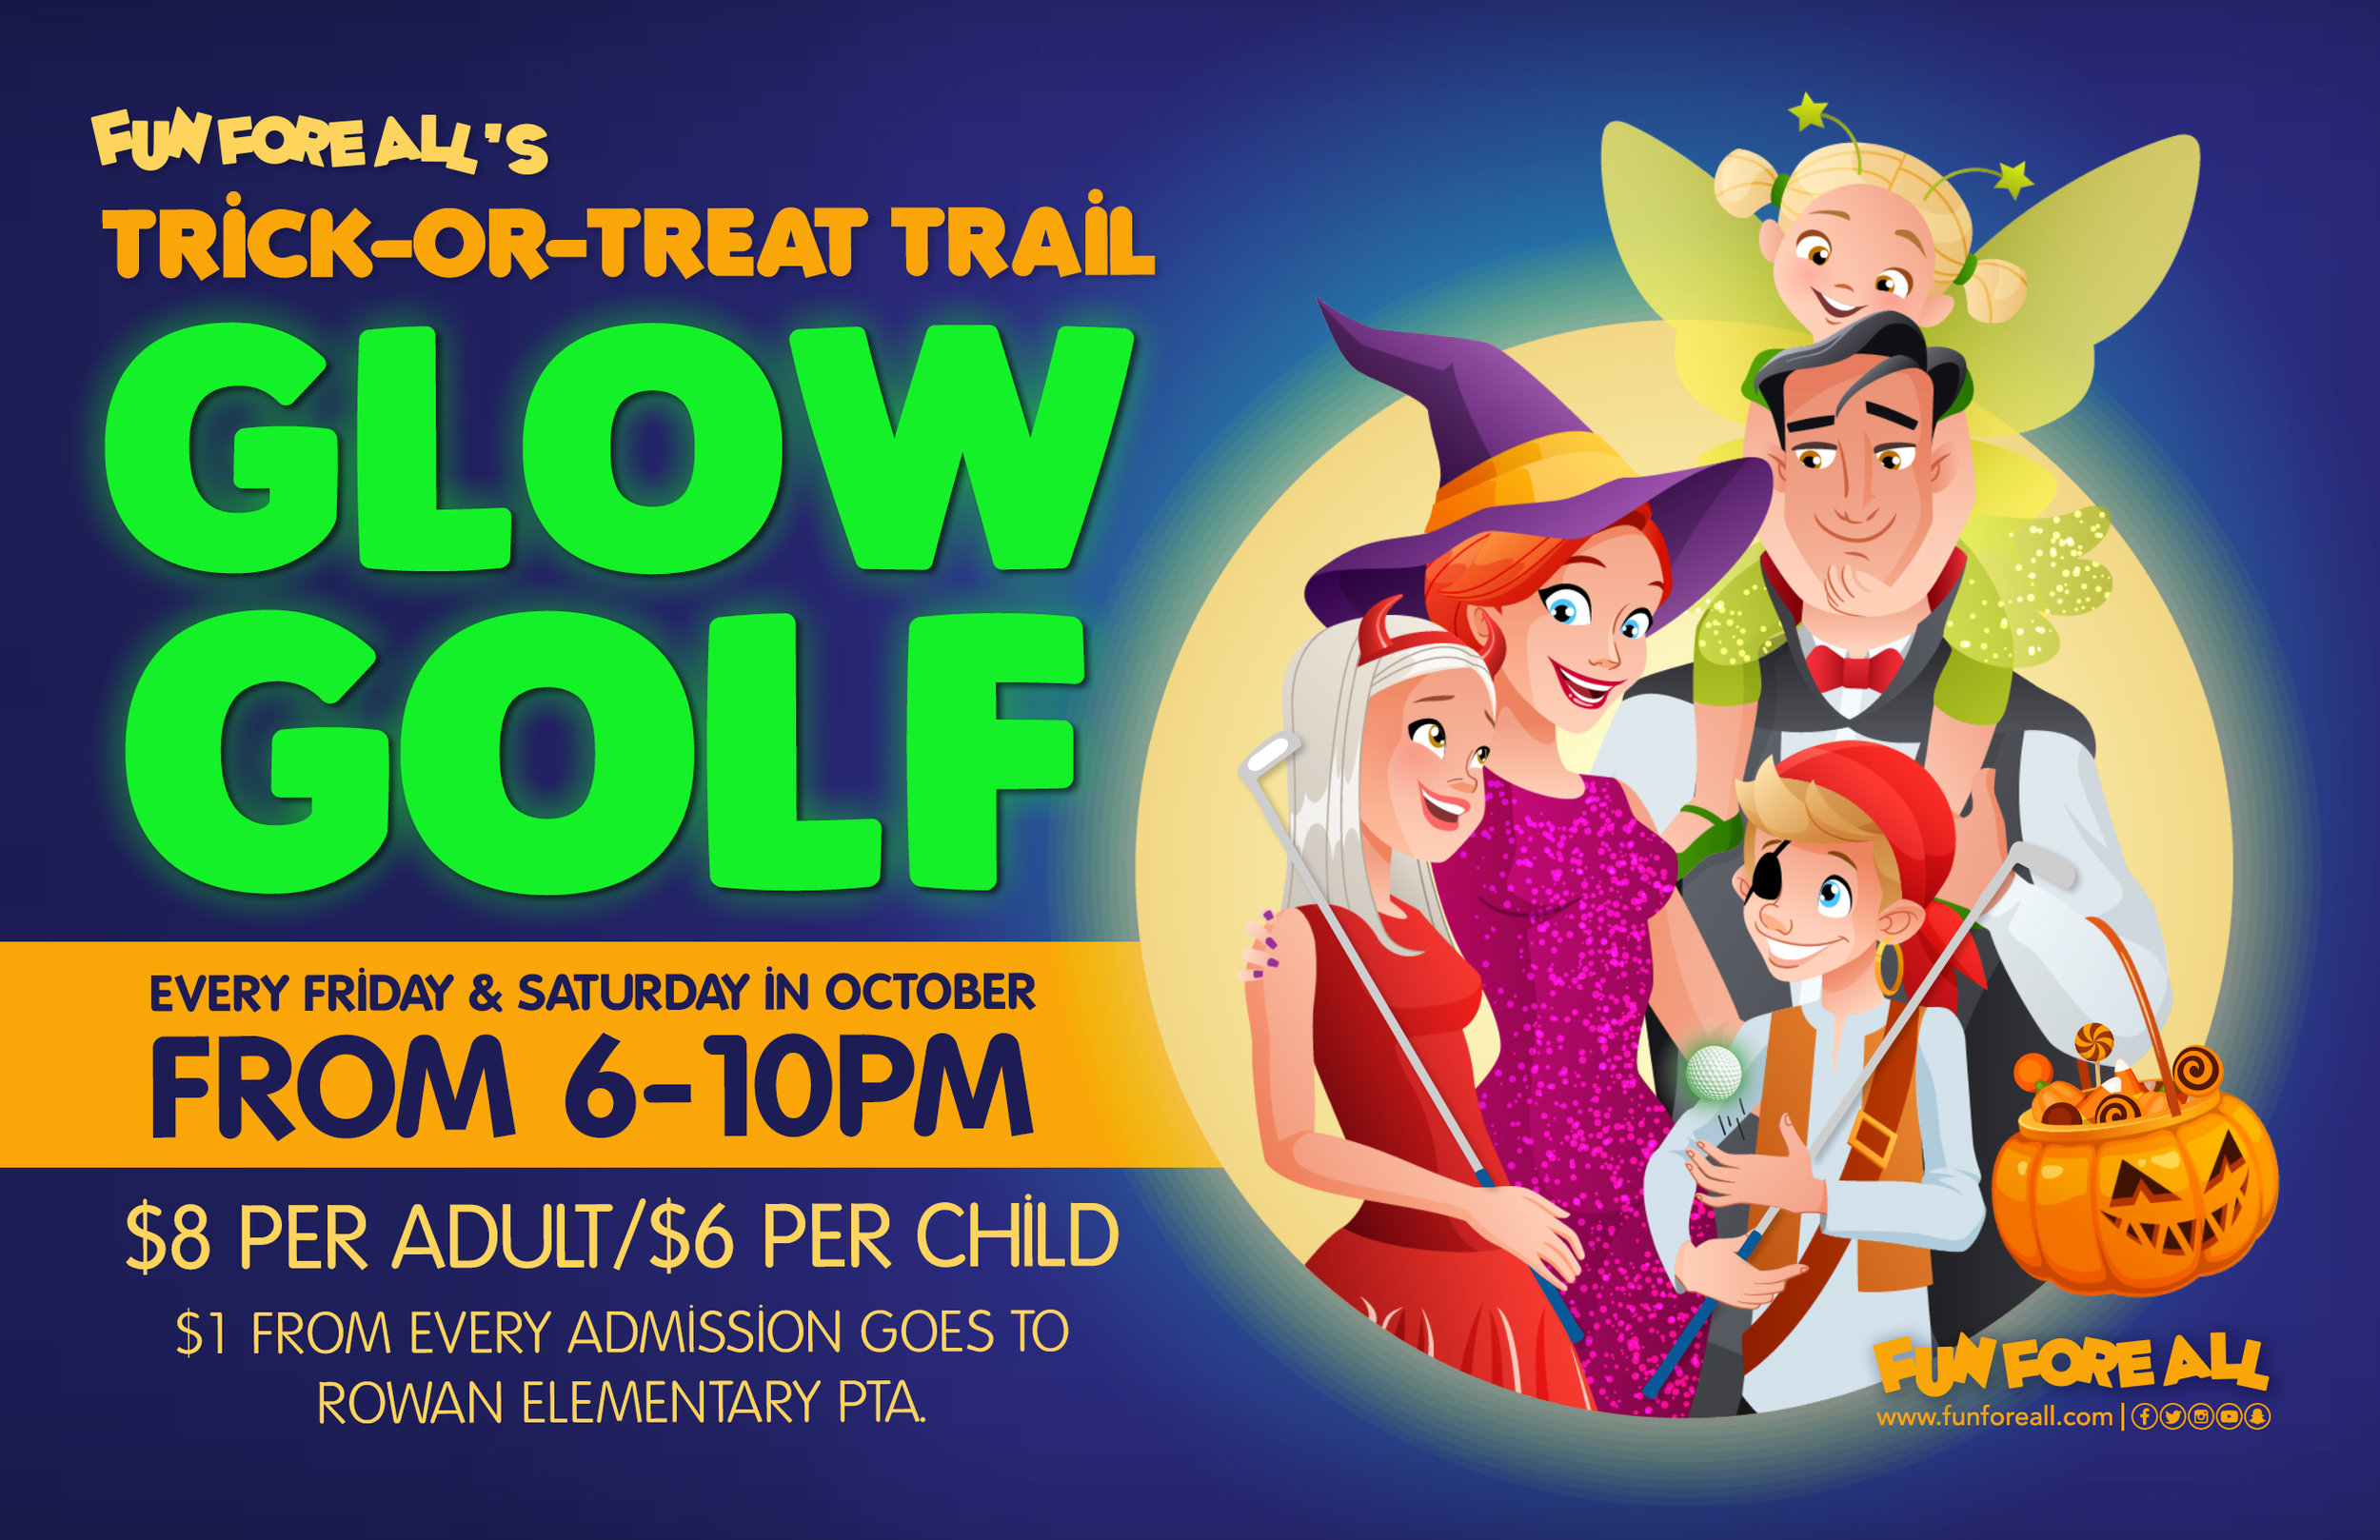 TRICK-OR-TREAT TRAIL GLOW GOLF FLYER (2018)